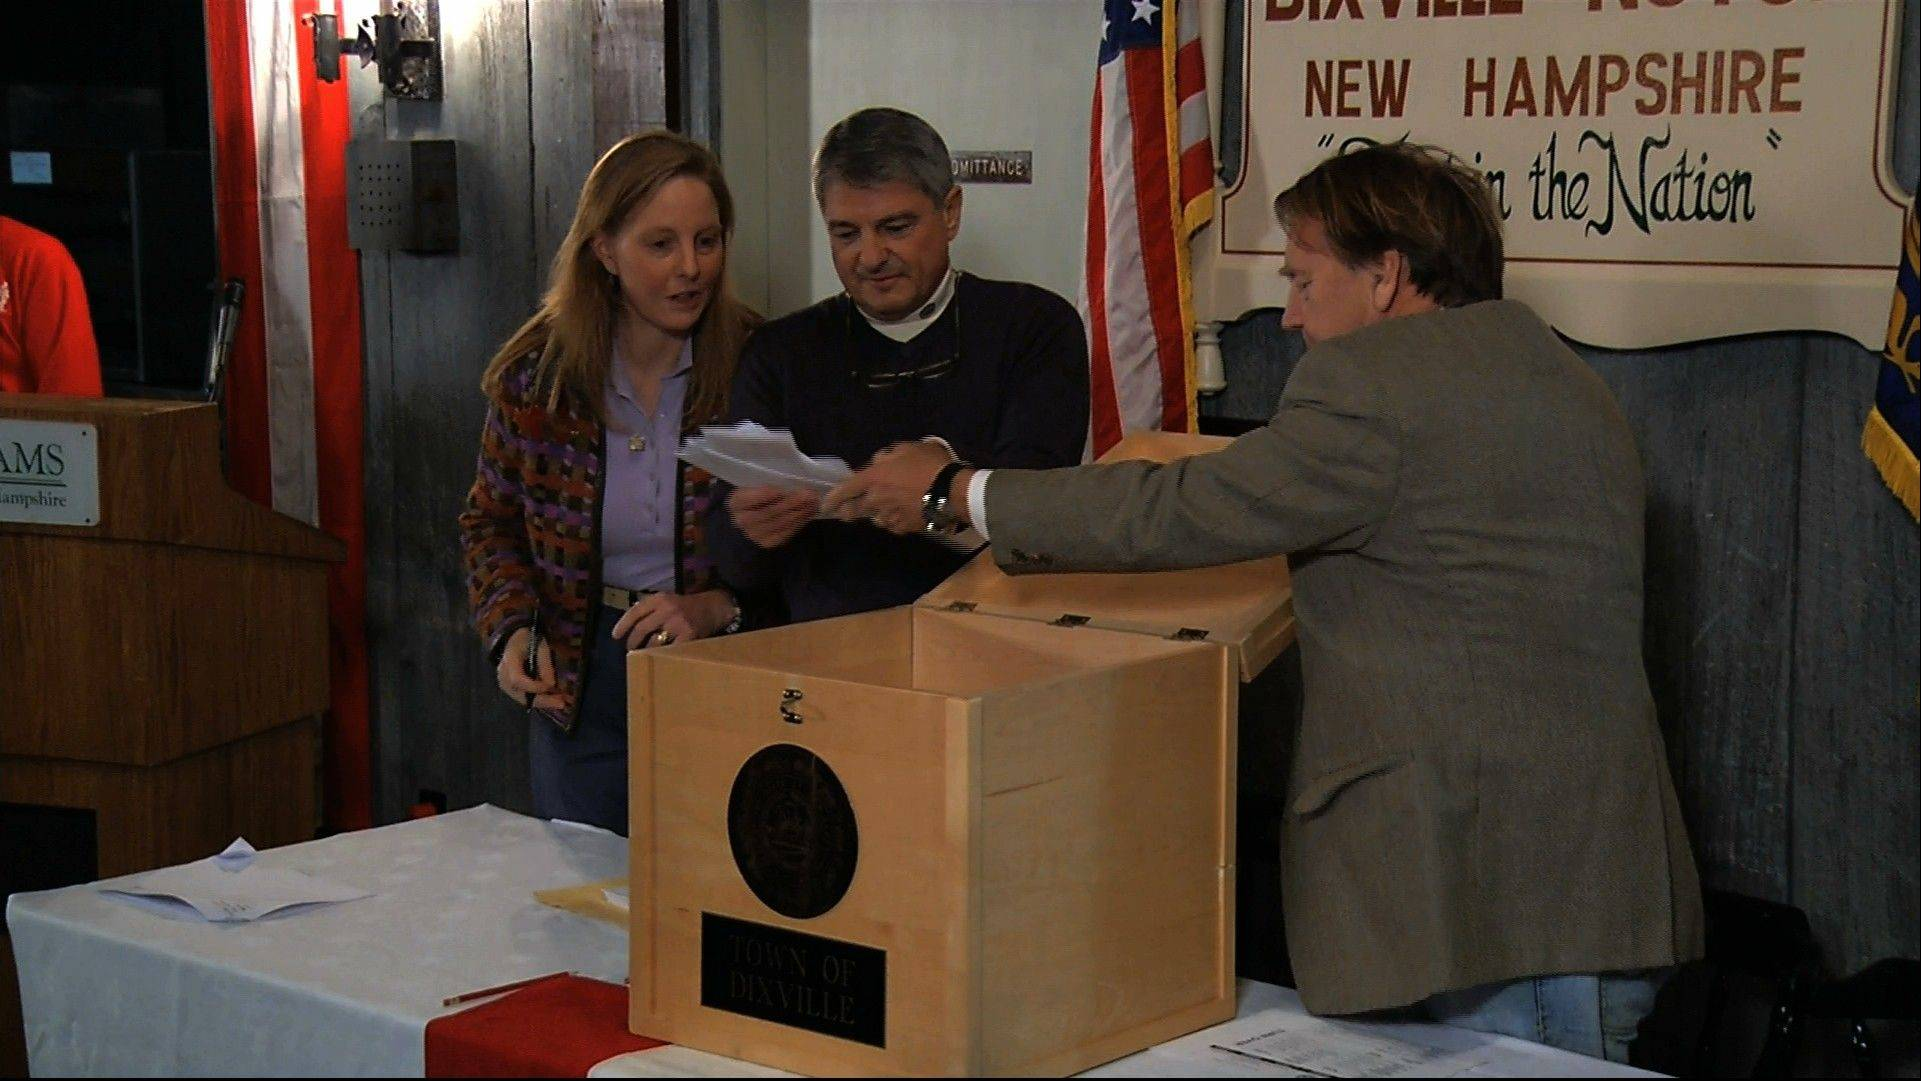 In this still frame made from video, ballots are removed from the ballot box to be counted in Dixville Notch, N.H., Tuesday, as they cast the first Election Day votes in the nation.